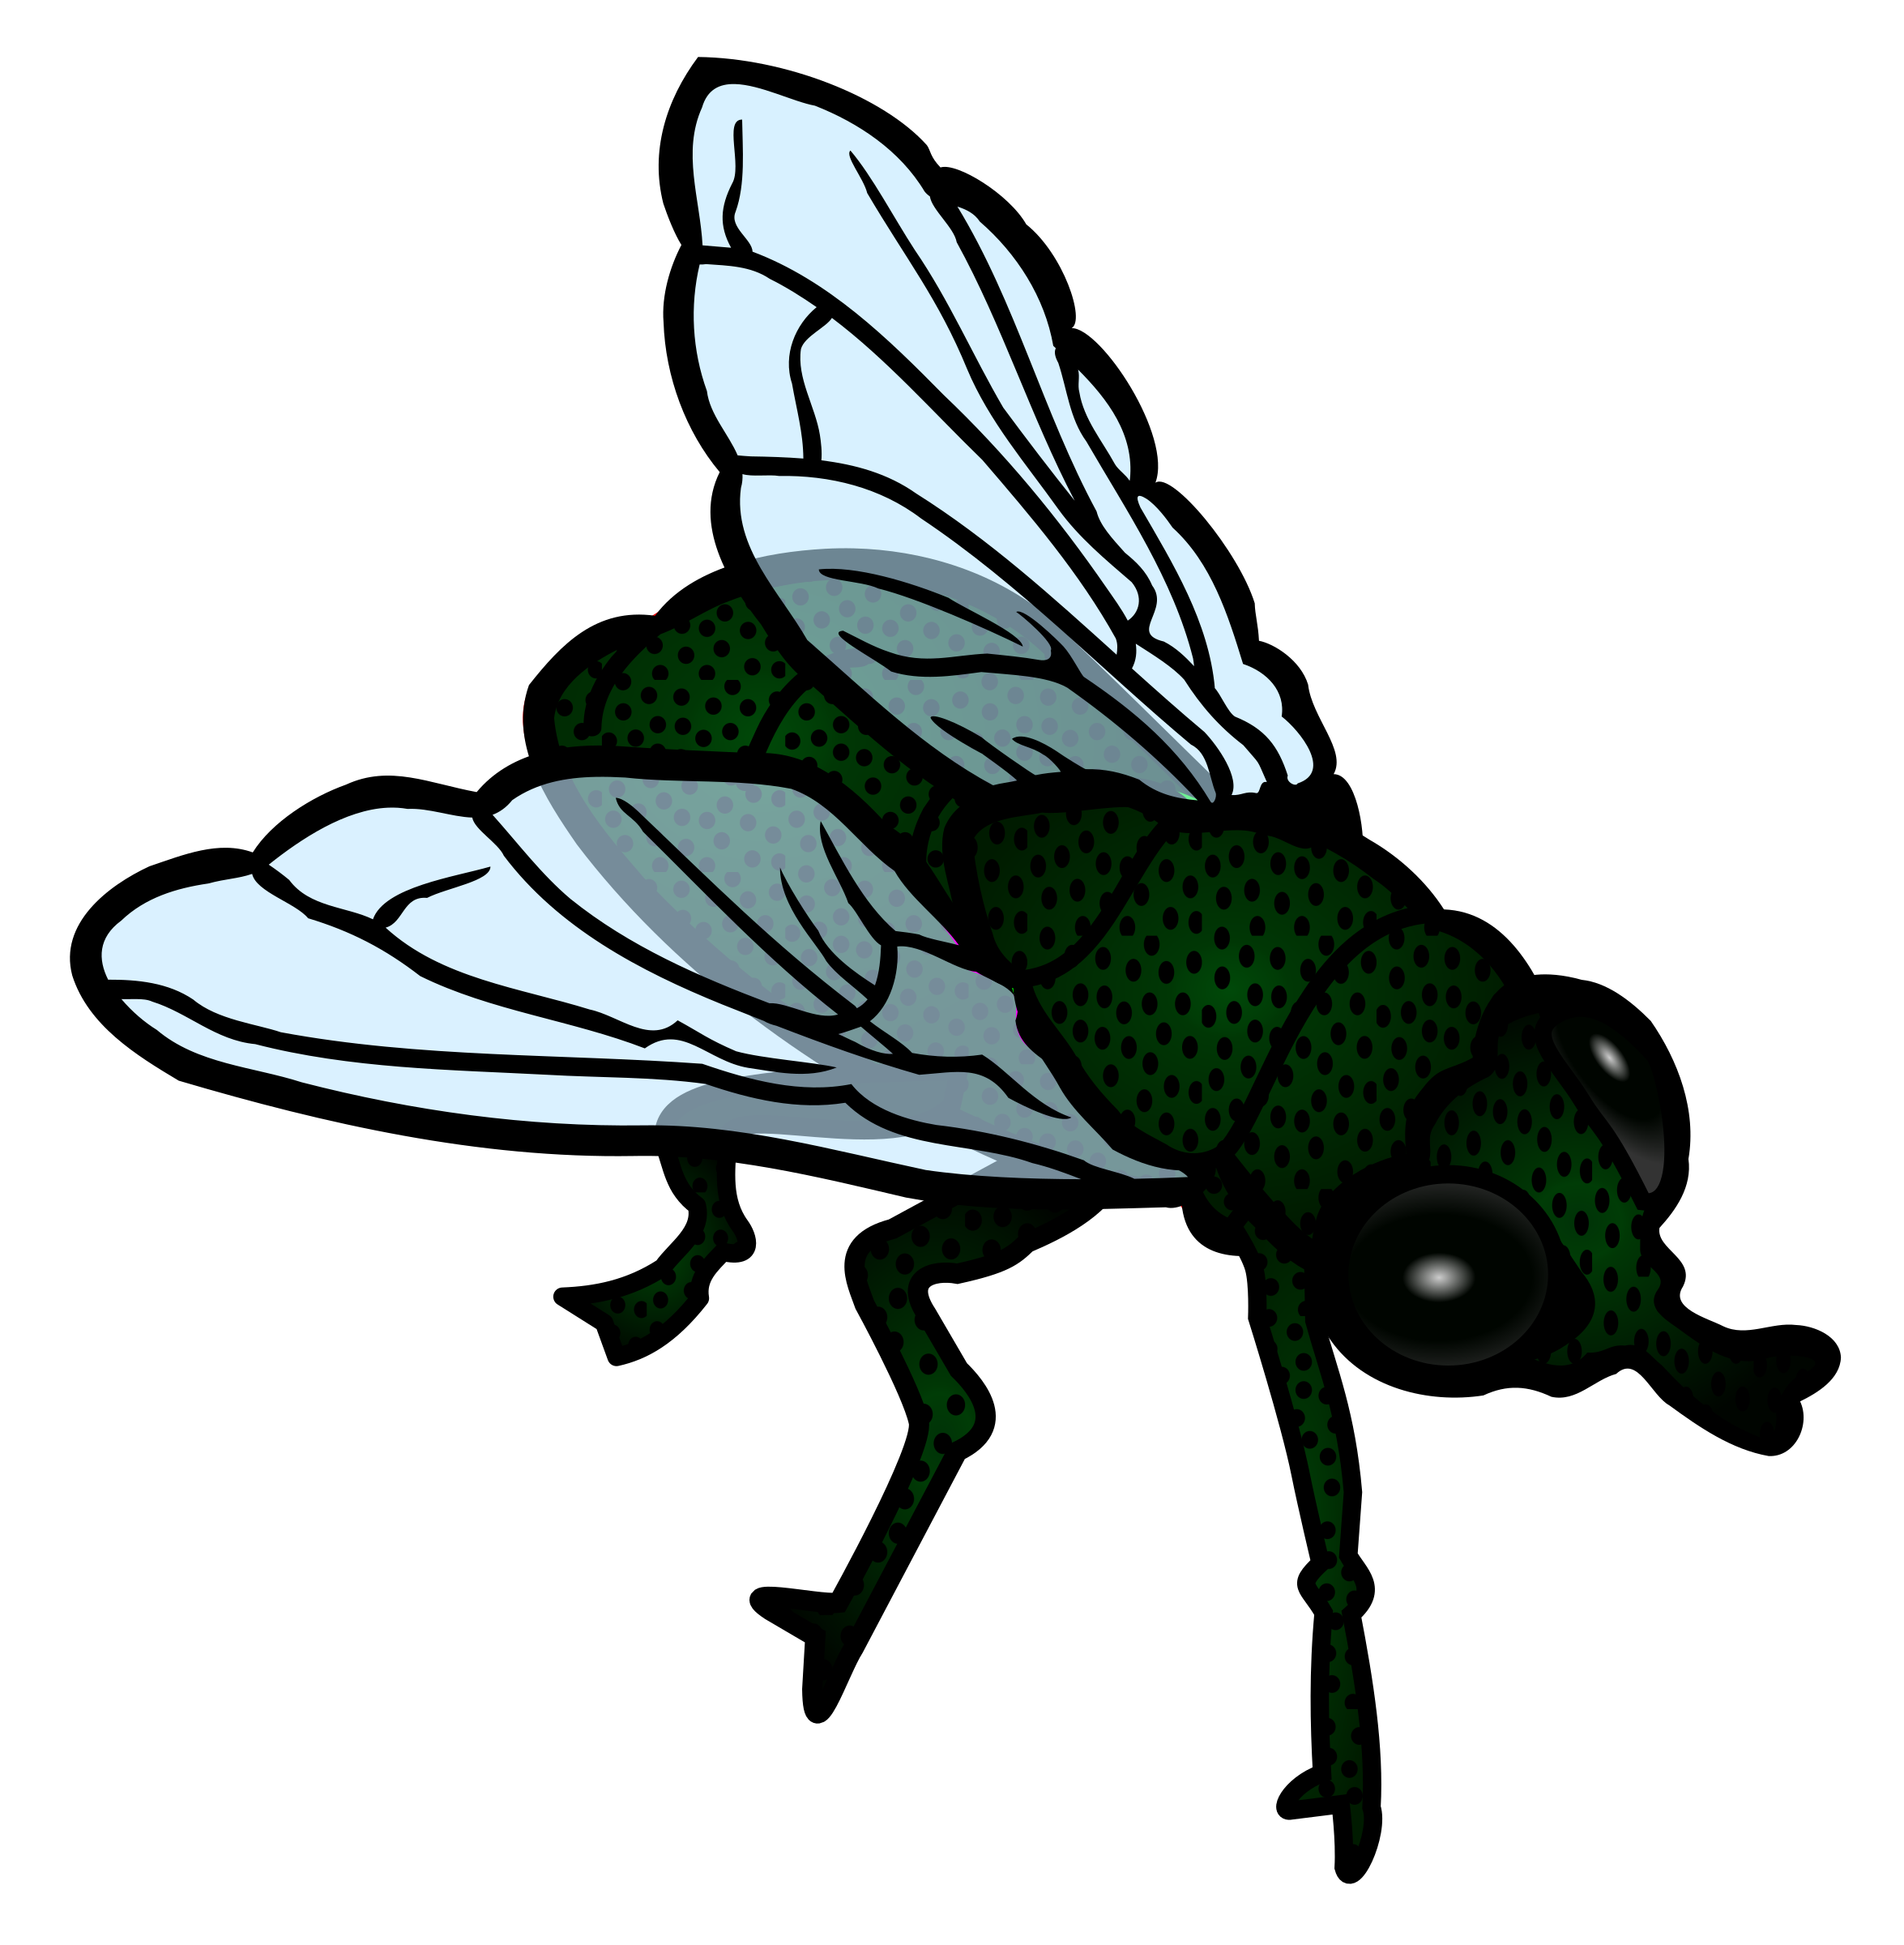 royalty free stock Clipart fly. Coloured big image png